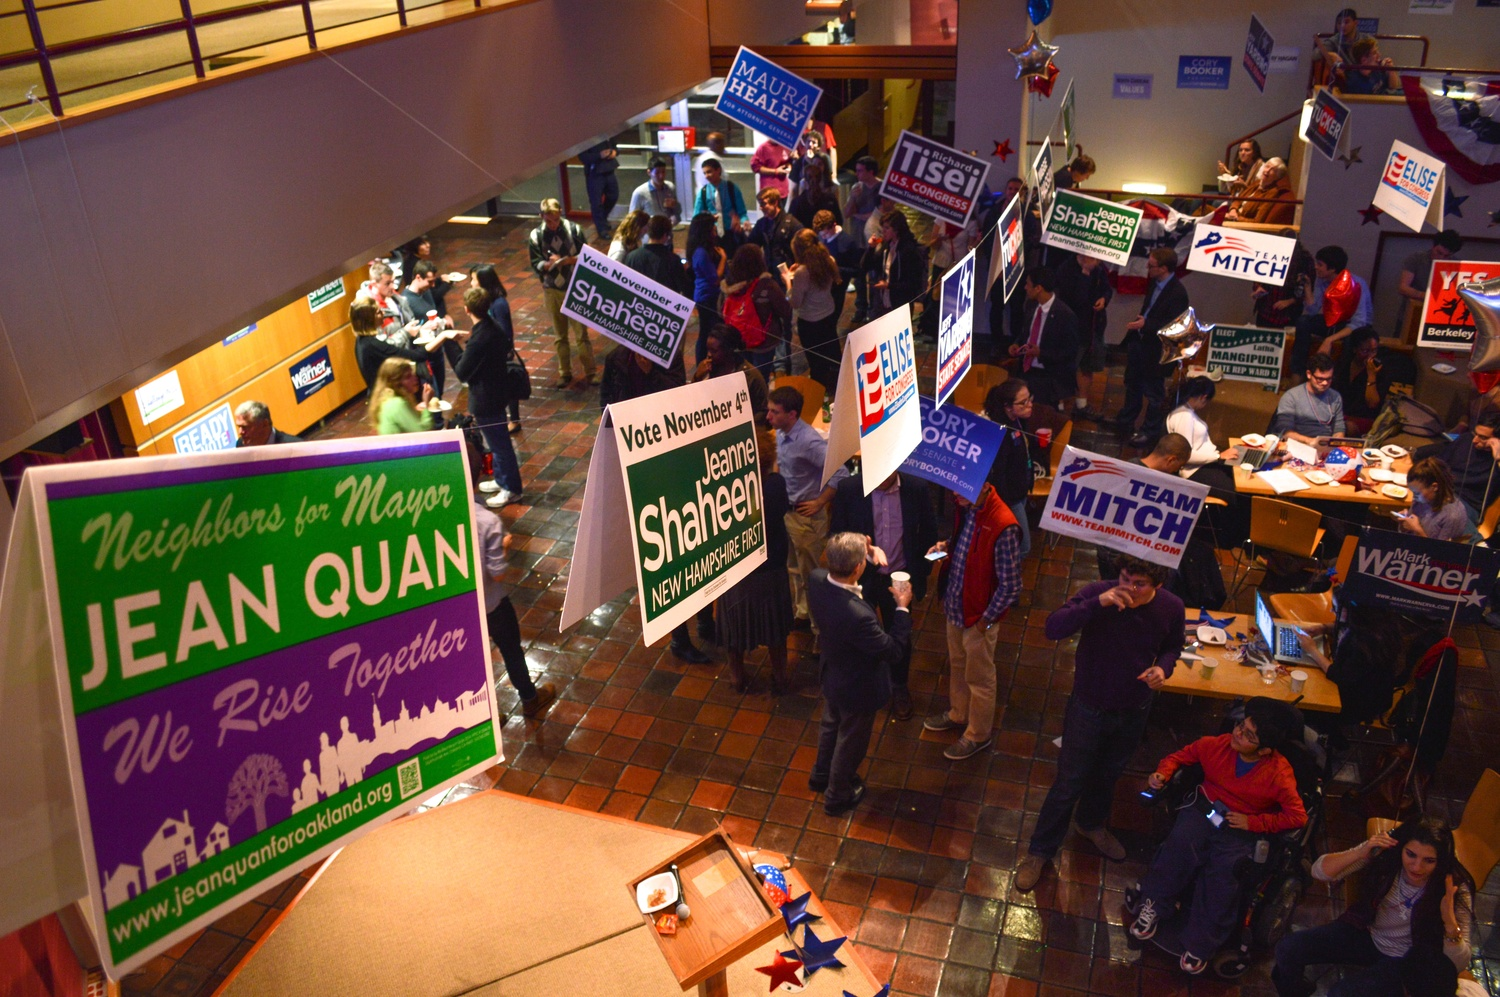 Under campaign banners and helium balloons, students and non-students alike congregate at the Institute of Politics in anticipation of the 2014 election results.